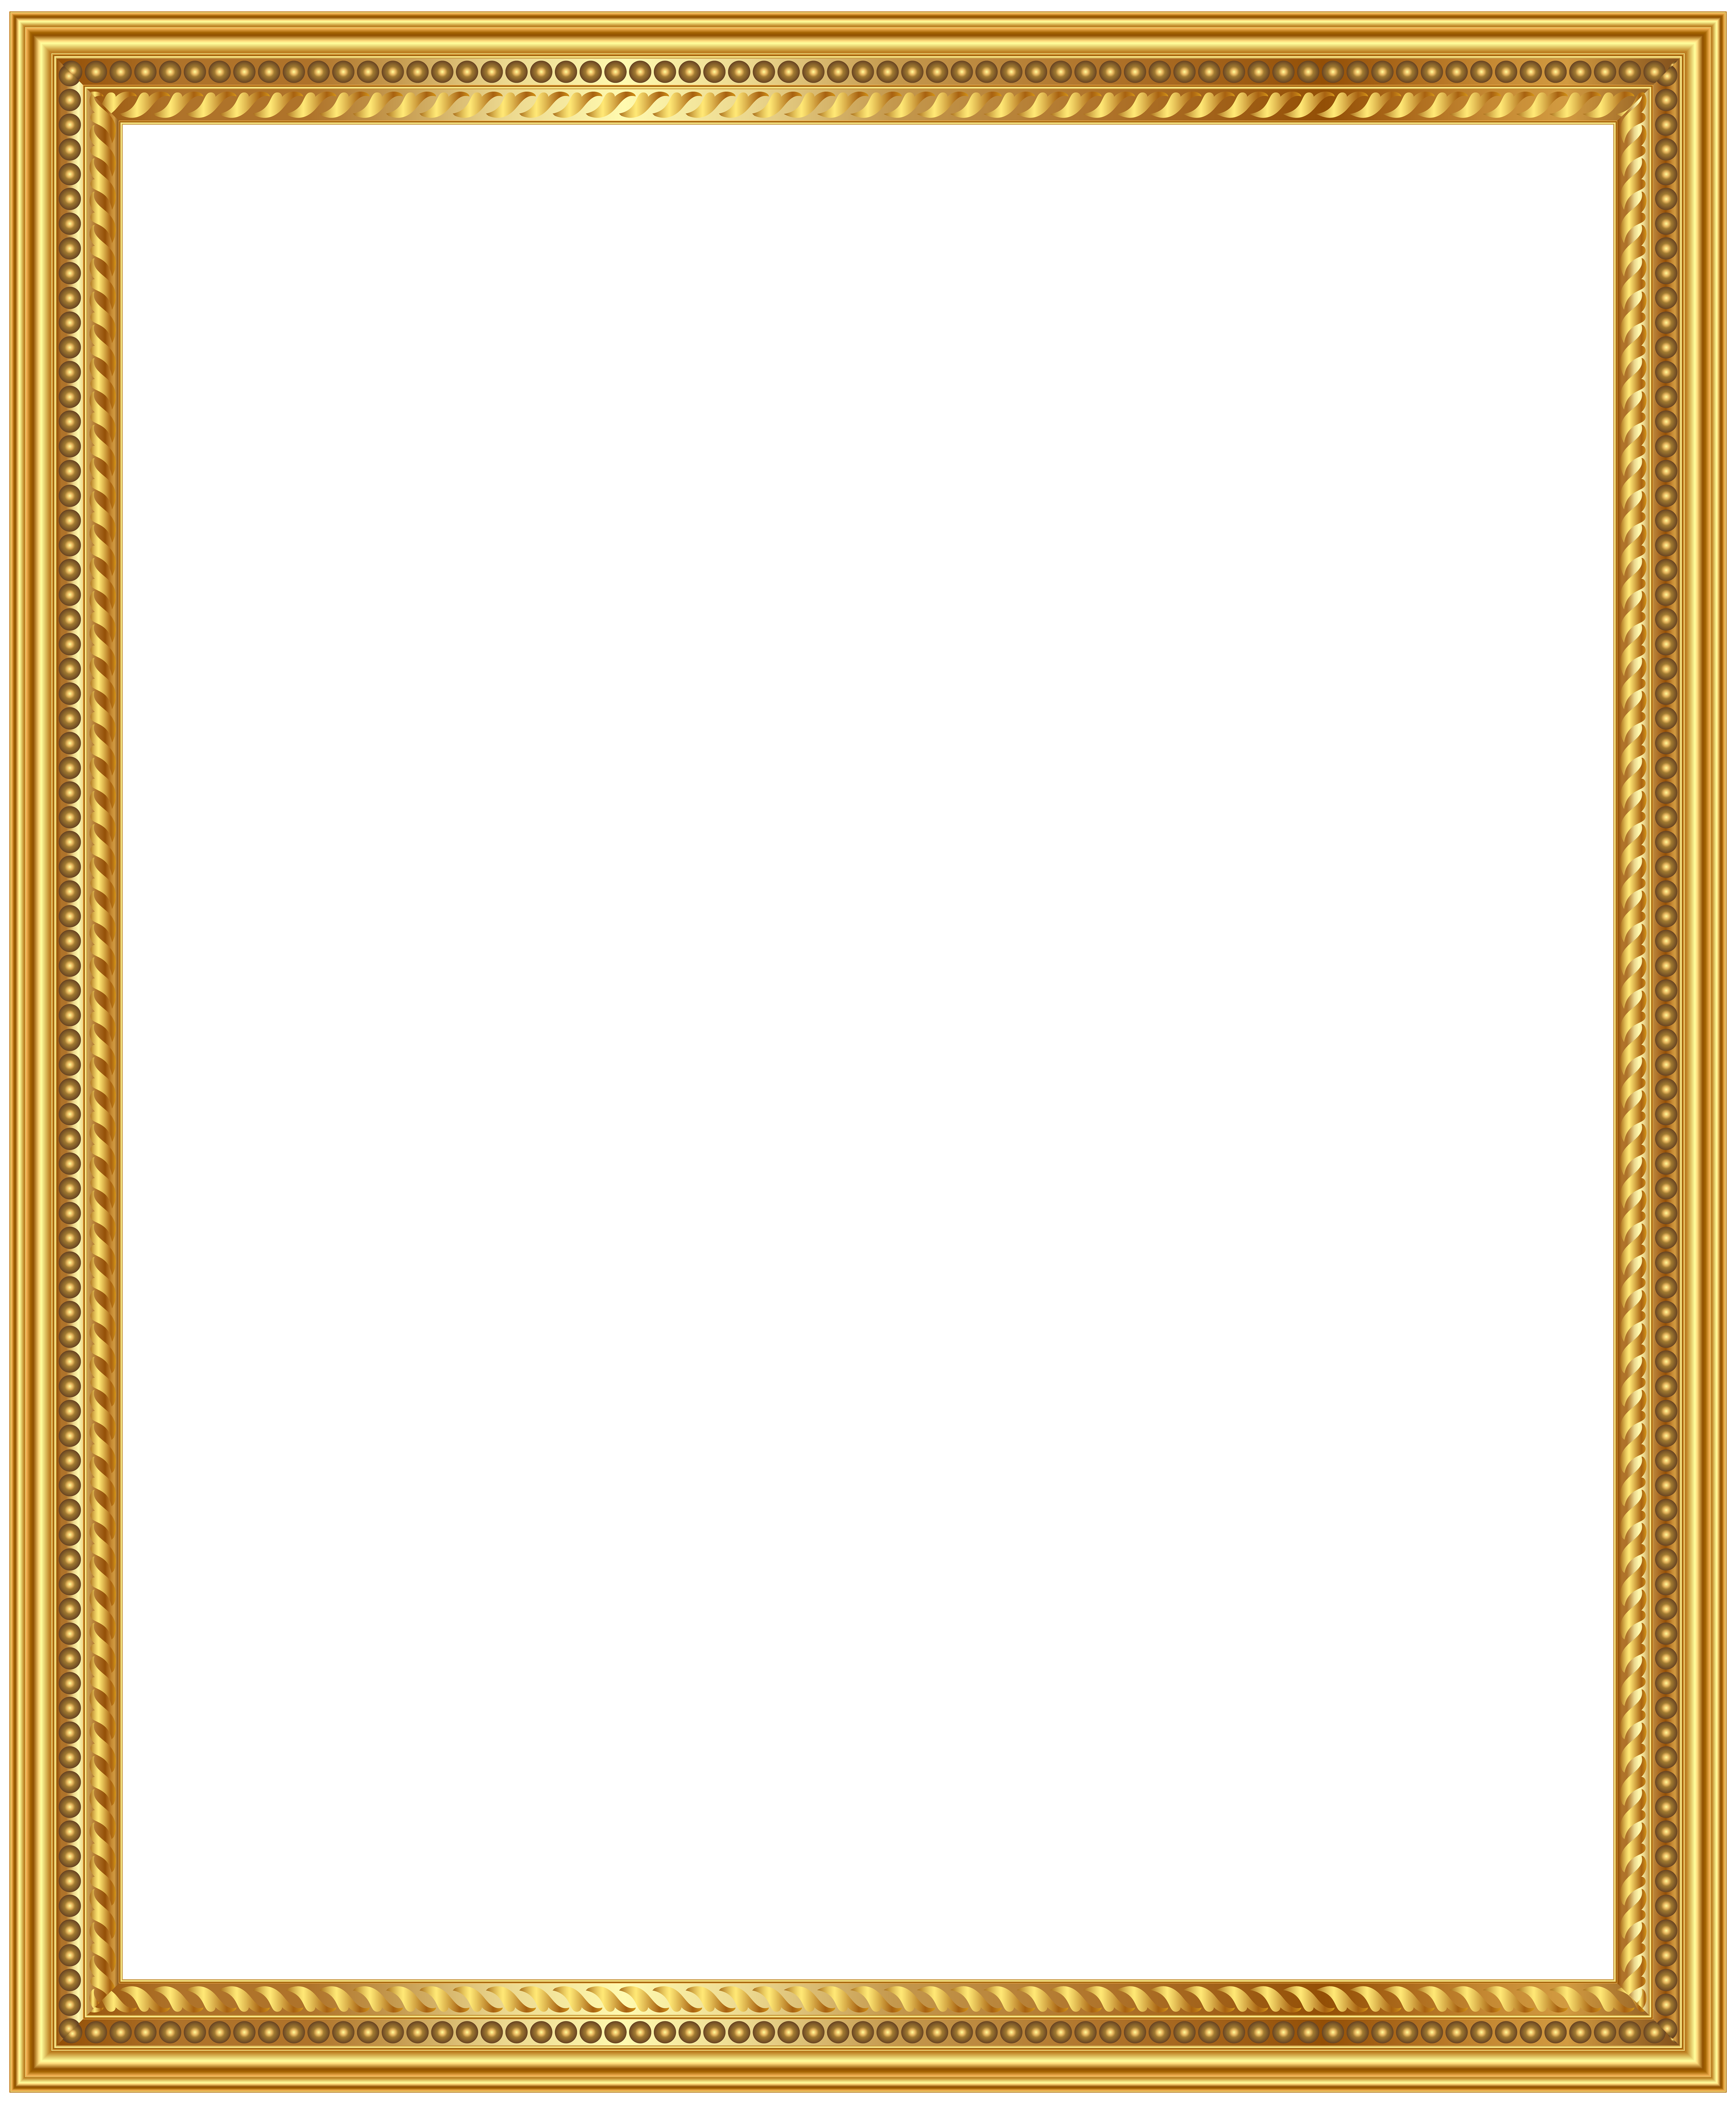 Picture frame png. Gold deco clip art